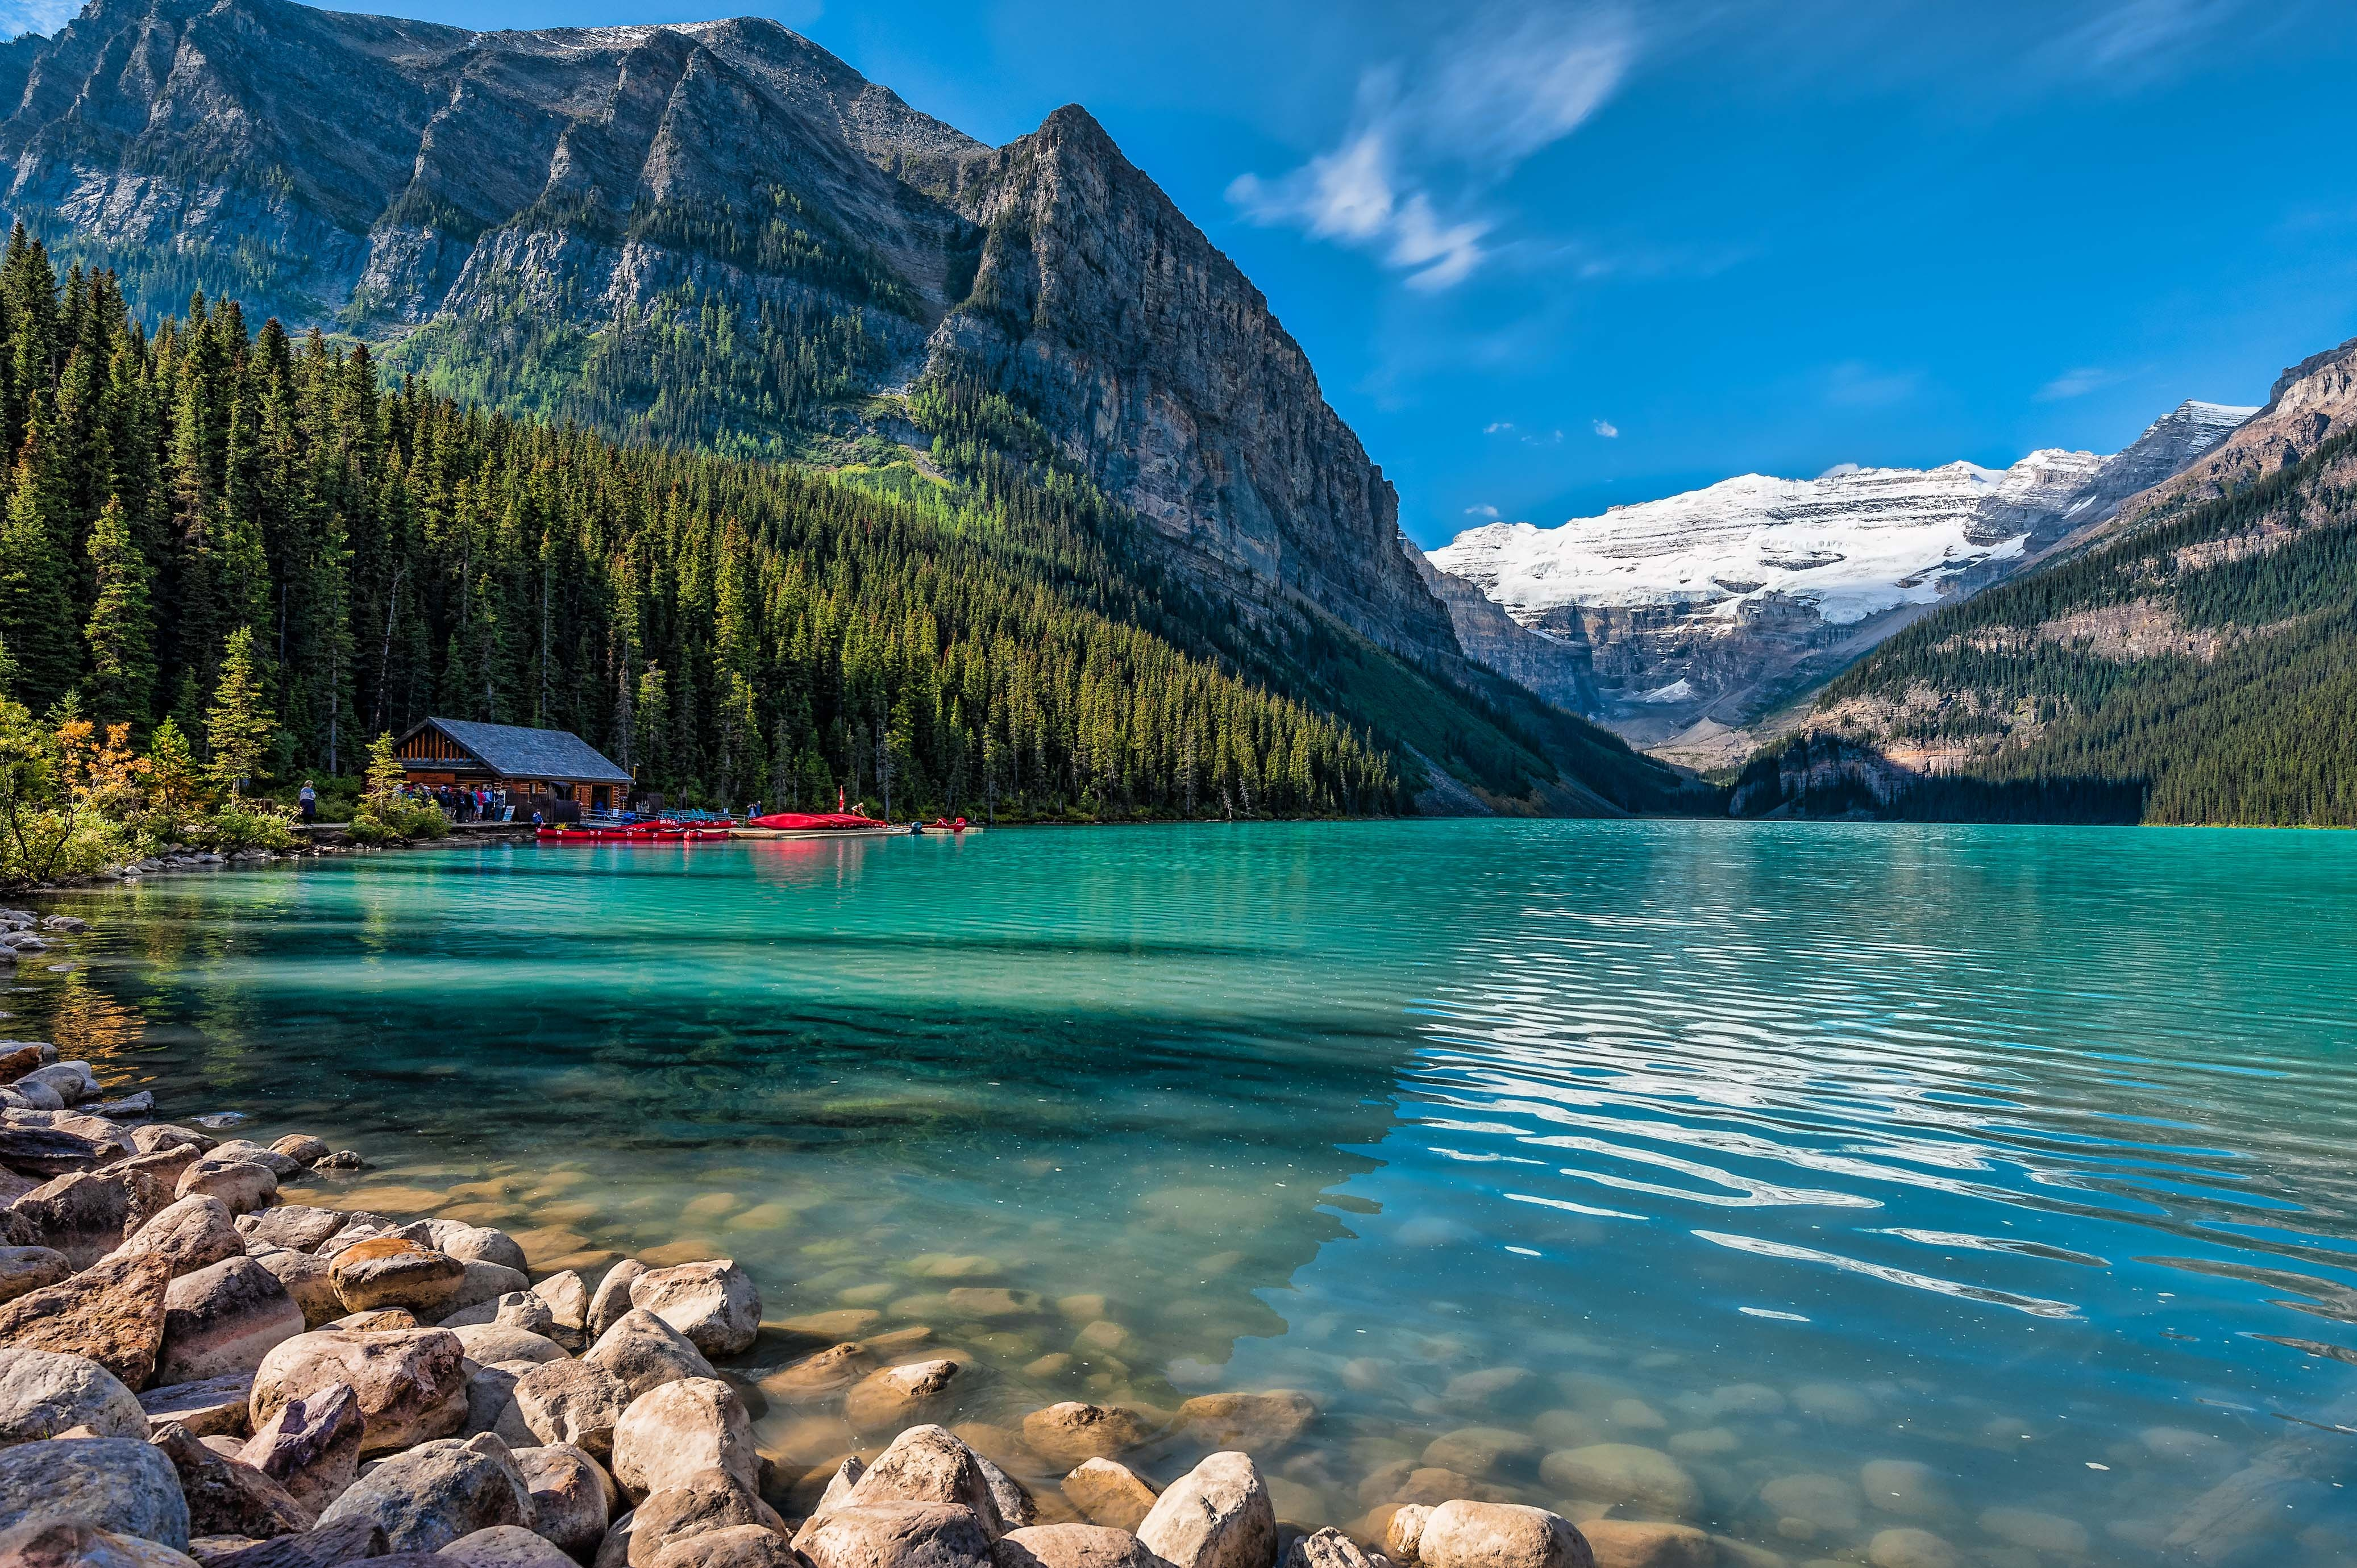 Wallpapers Alberta wate stones house Canada firs boats 4147x2759